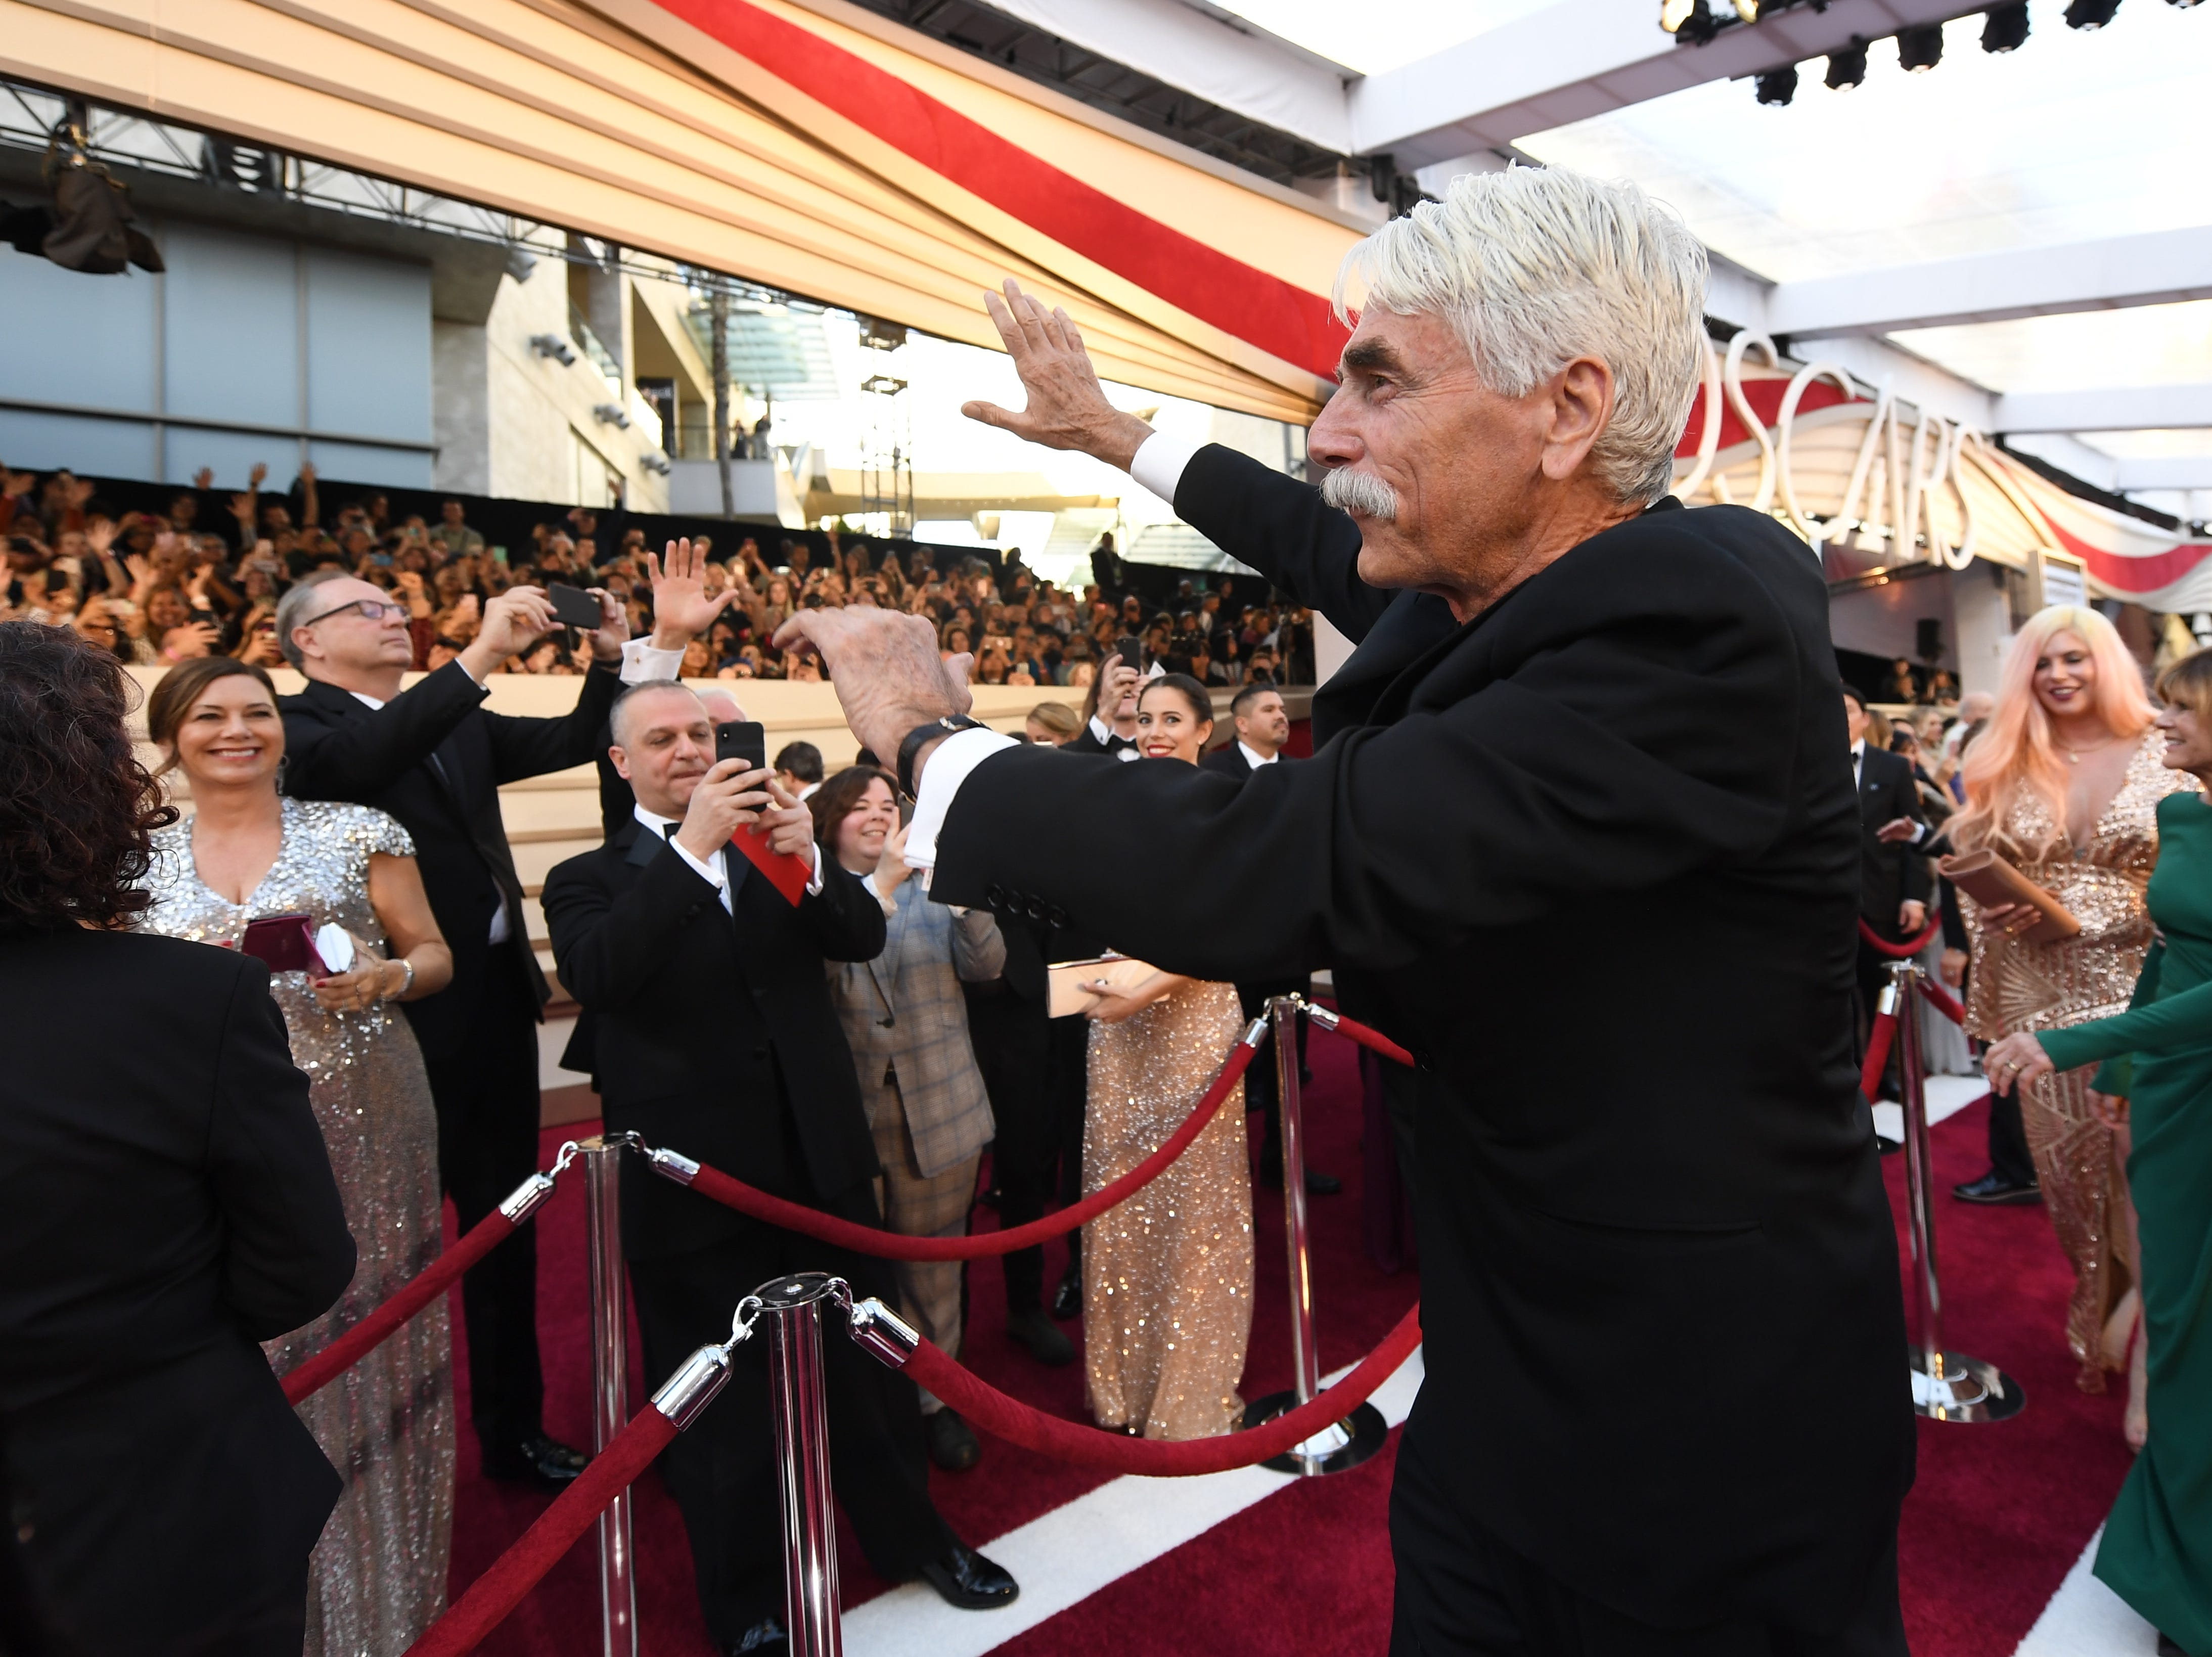 February 24, 2019; Los Angeles, CA, USA; Sam Elliott arrives at the 91st Academy Awards at the Dolby Theatre. Mandatory Credit: Robert Hanashiro-USA TODAY NETWORK (Via OlyDrop)